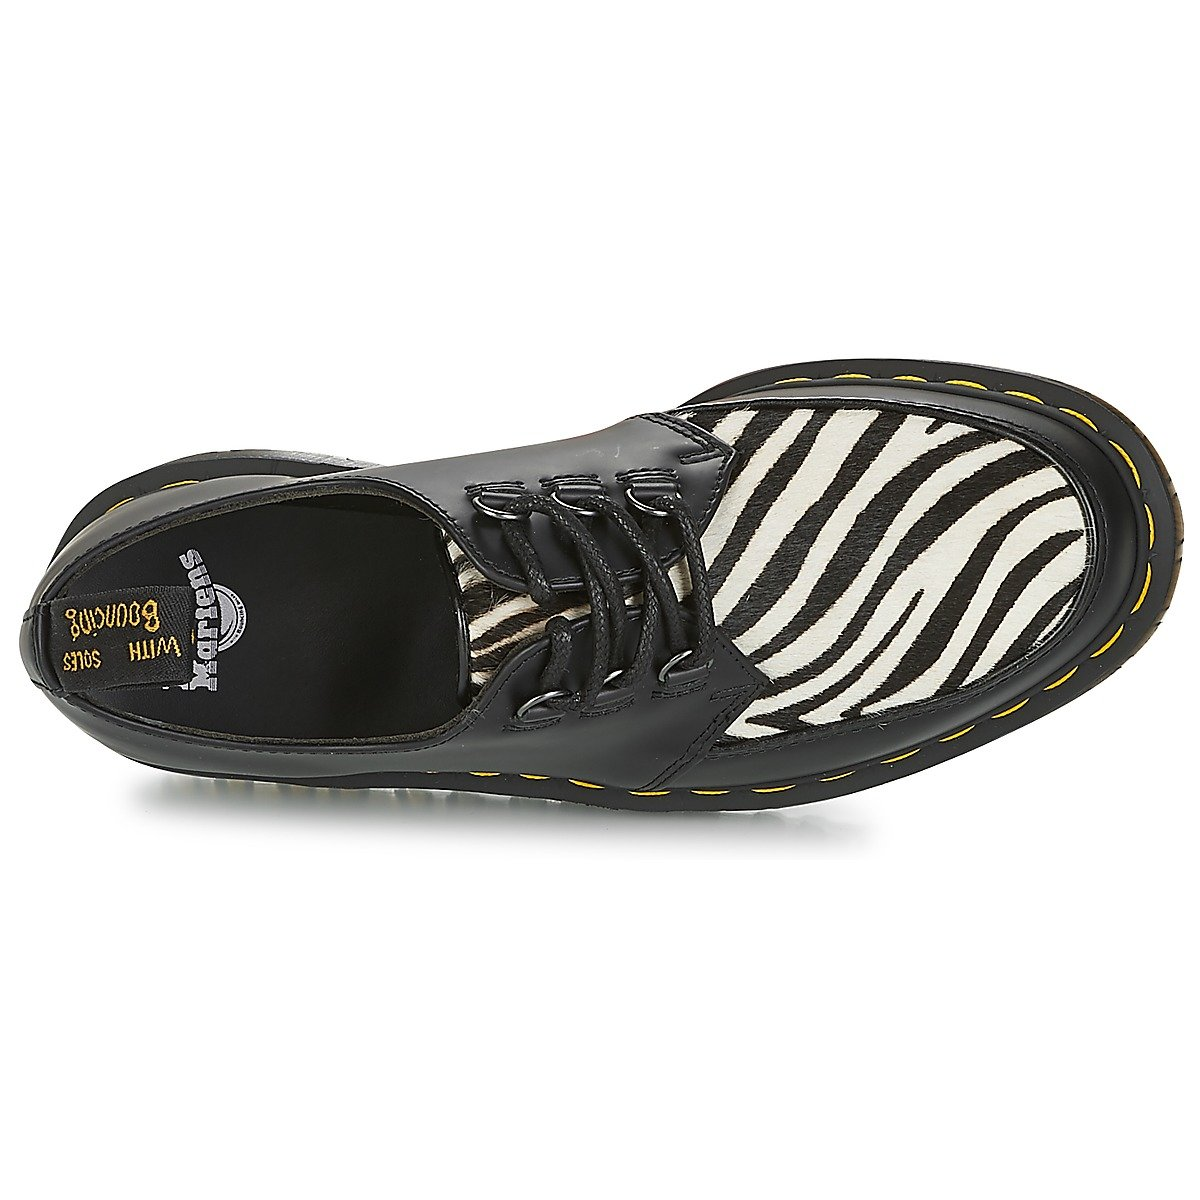 Dr. Martens Unisex Ramsey Zebra B072MV9ZJN 11 M UK|Black Smooth/Zebra Hair on